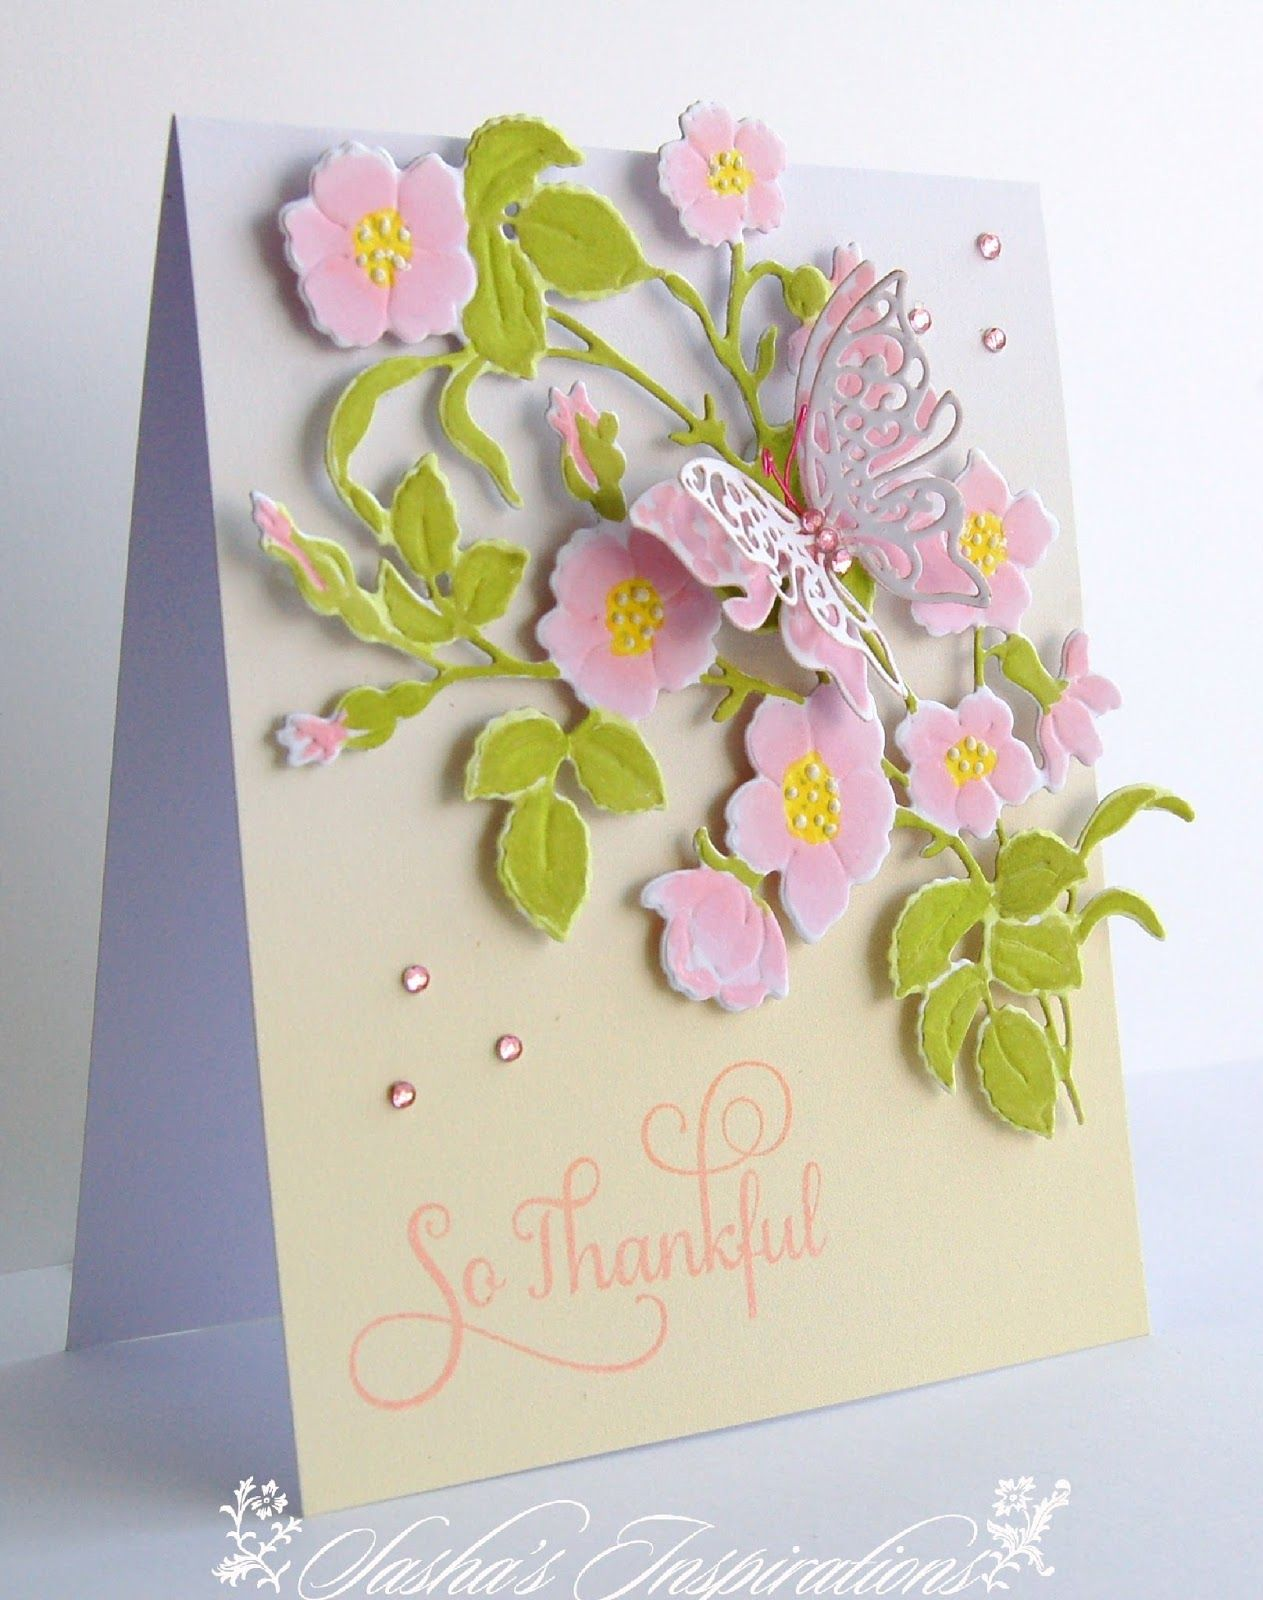 anna griffin 4 piece bow set card | Sasha's Inspirations: Coloured Dry Embossing with Anna Griffin Dies